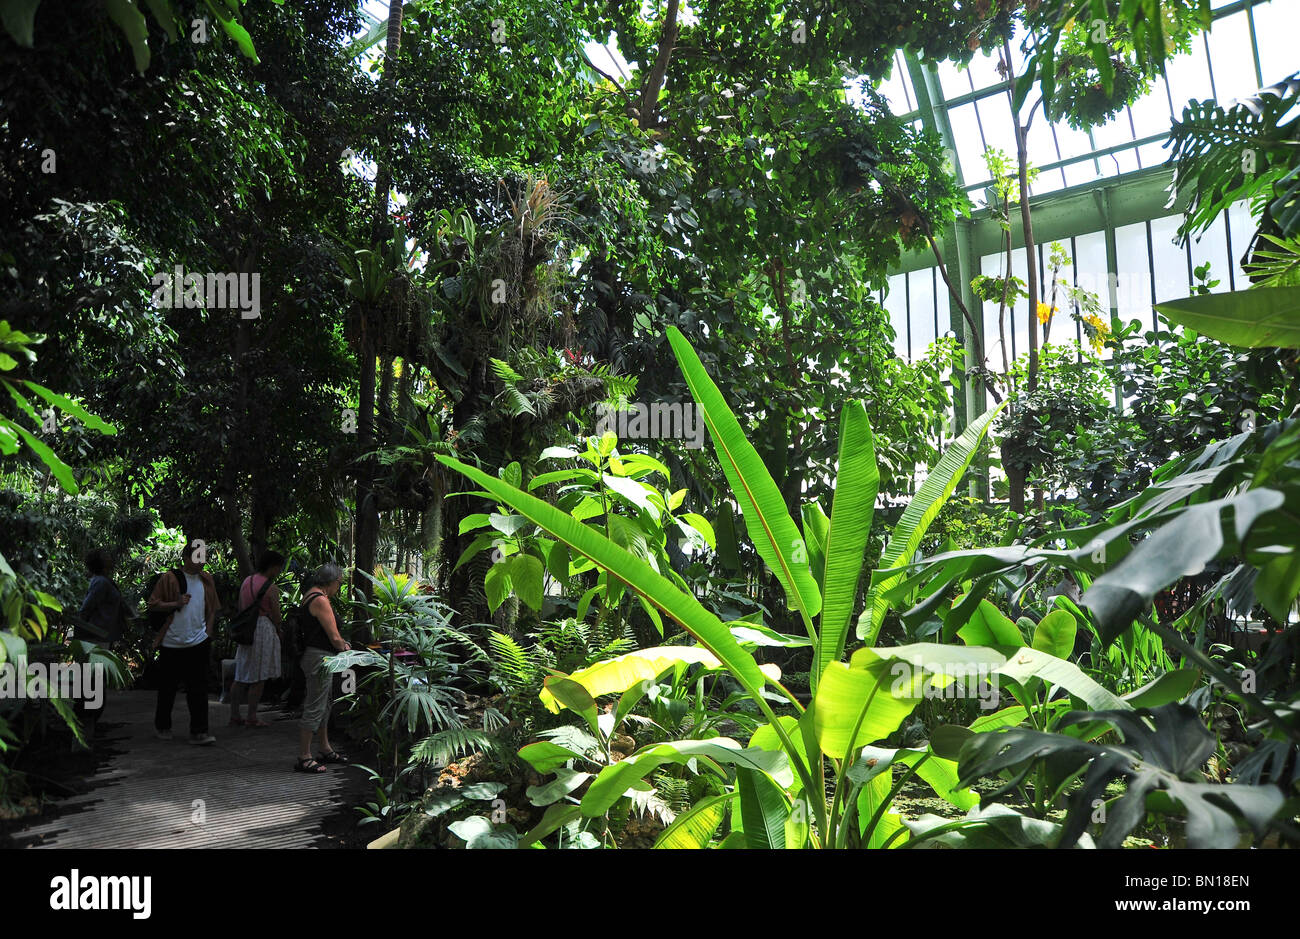 Jardin des plantes tropical greenhouse paris france for Jardin plantes paris